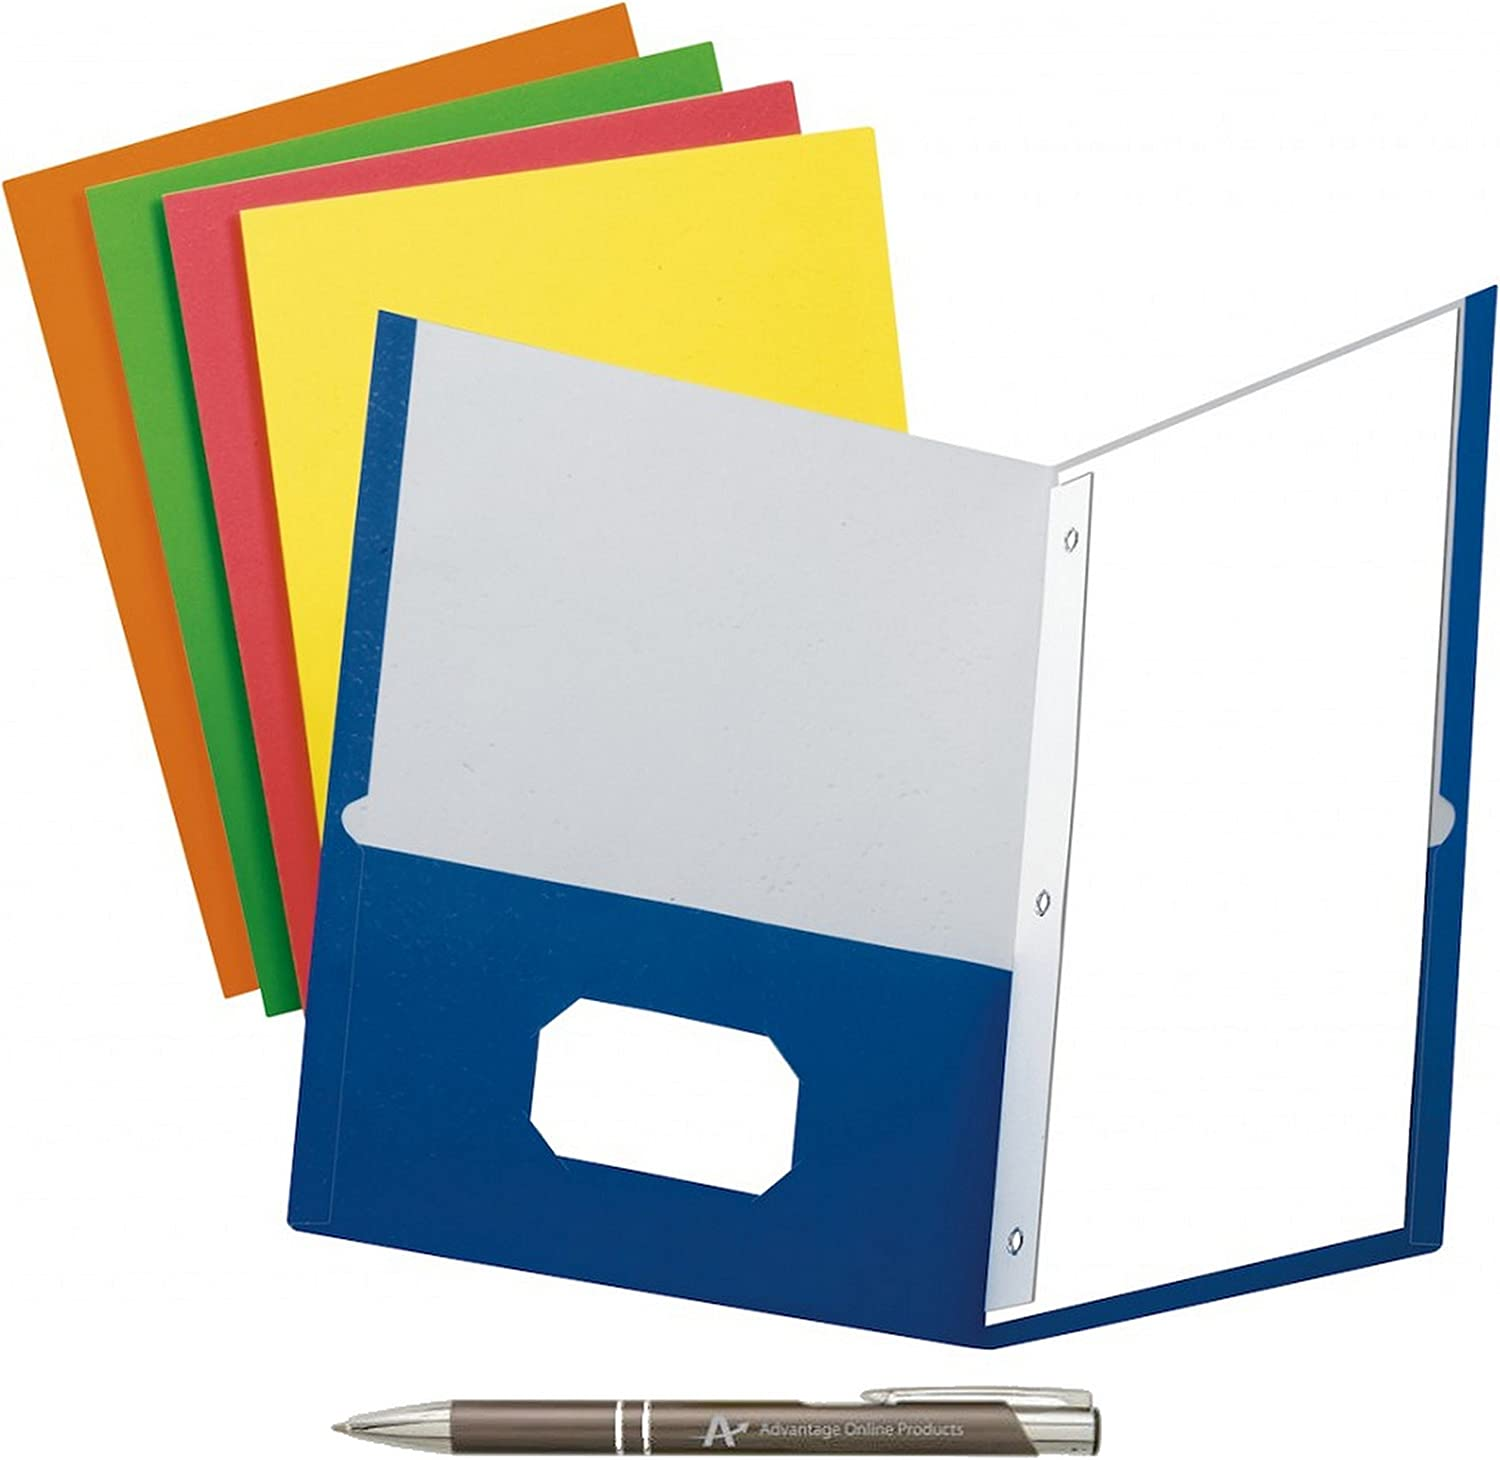 5 Colors and a Bonus AdvantageOP Black and Chrome Retractable Pen. Blue, Green, Purple, Red, Yellow Pack of 5 School Grade Twin Pocket Folders with Prong Fasteners